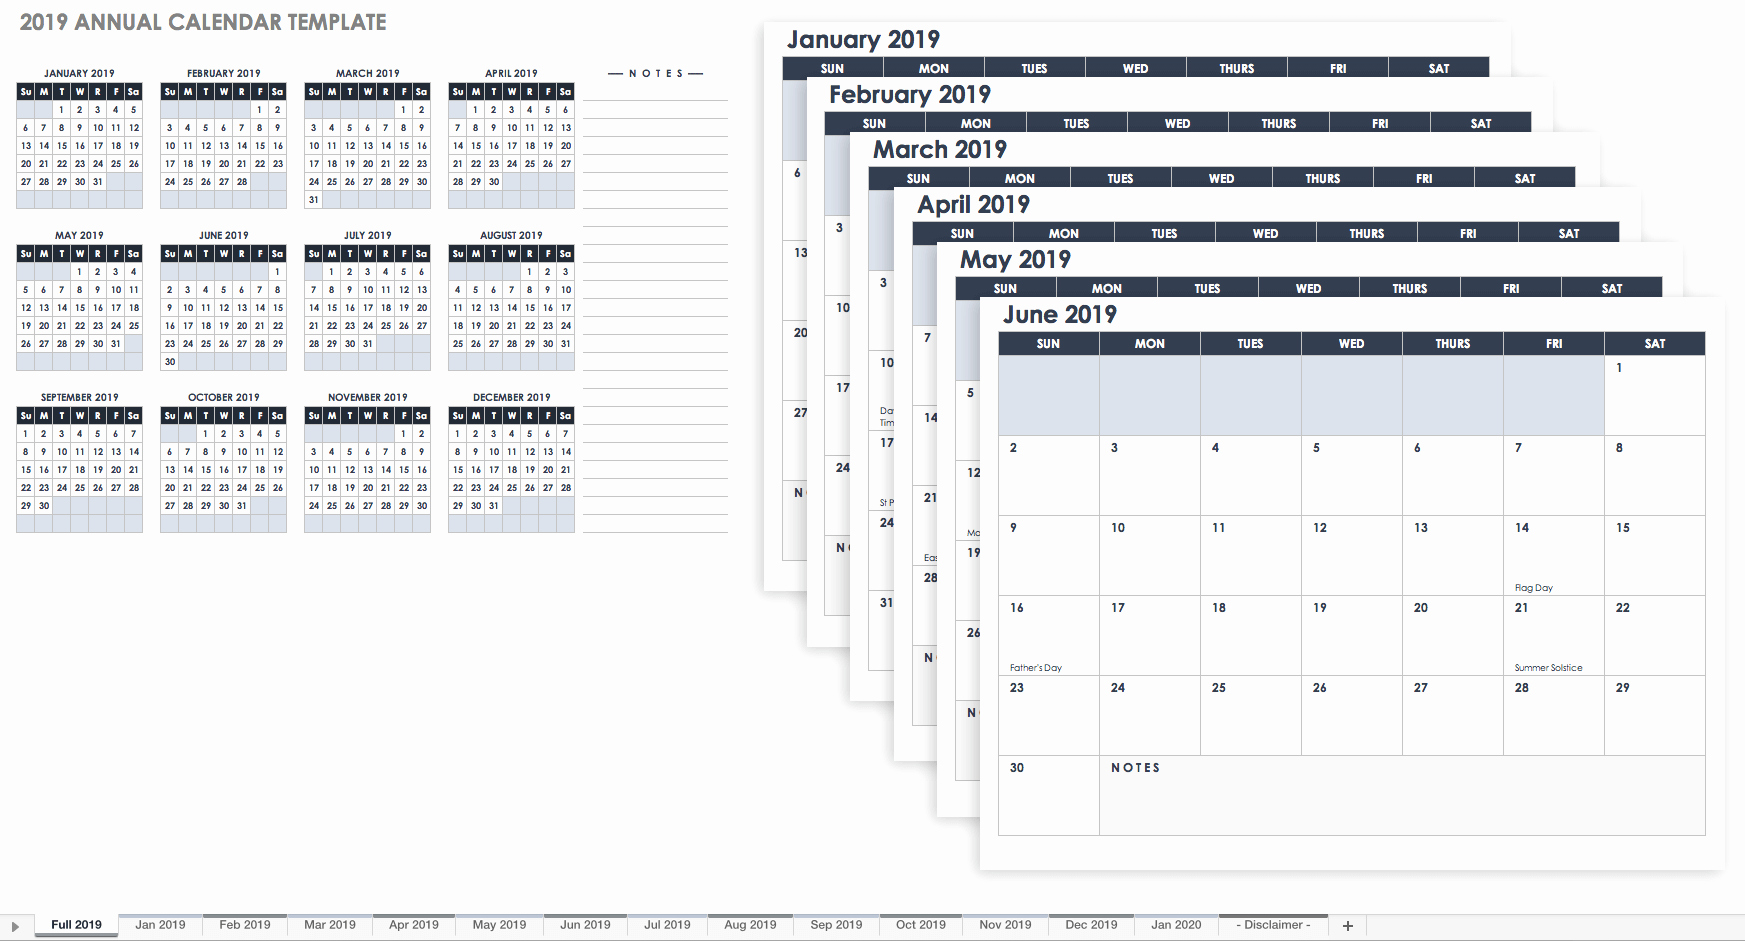 Month by Month Calendar Template Awesome 15 Free Monthly Calendar Templates